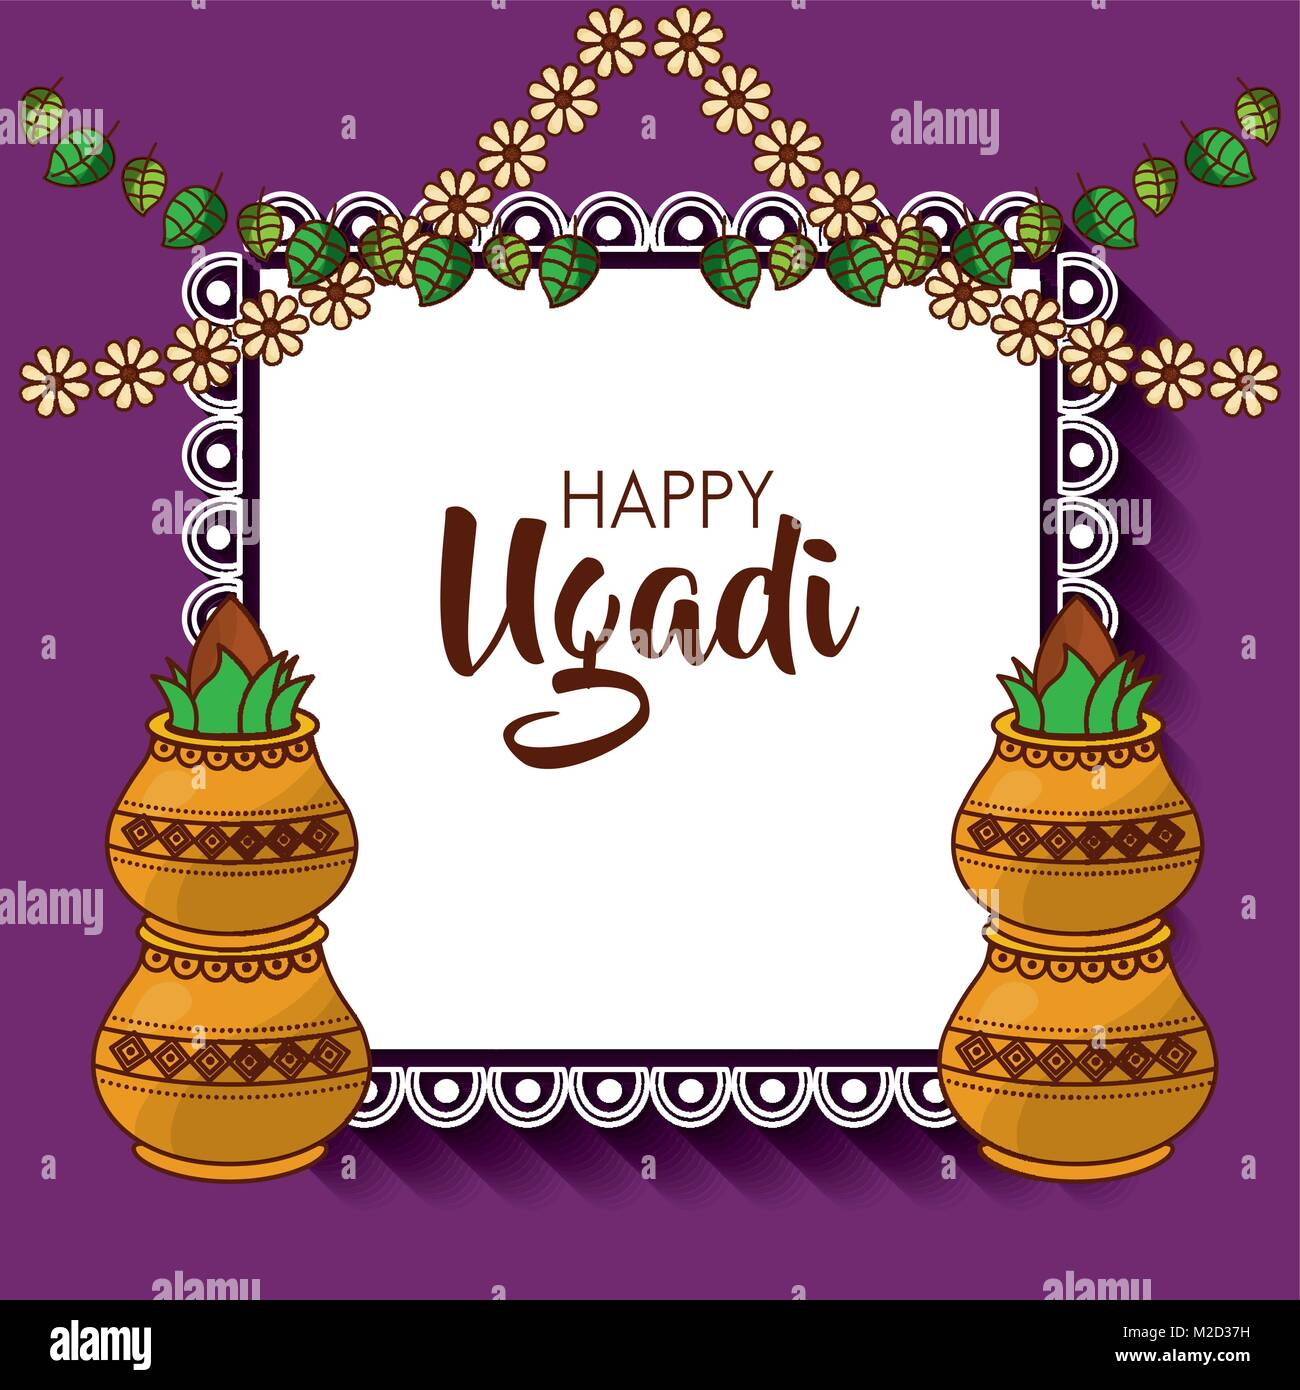 hindu new year high resolution stock photography and images alamy https www alamy com stock photo happy ugadi hindu new year greeting card pot with coconut flowers 173620933 html